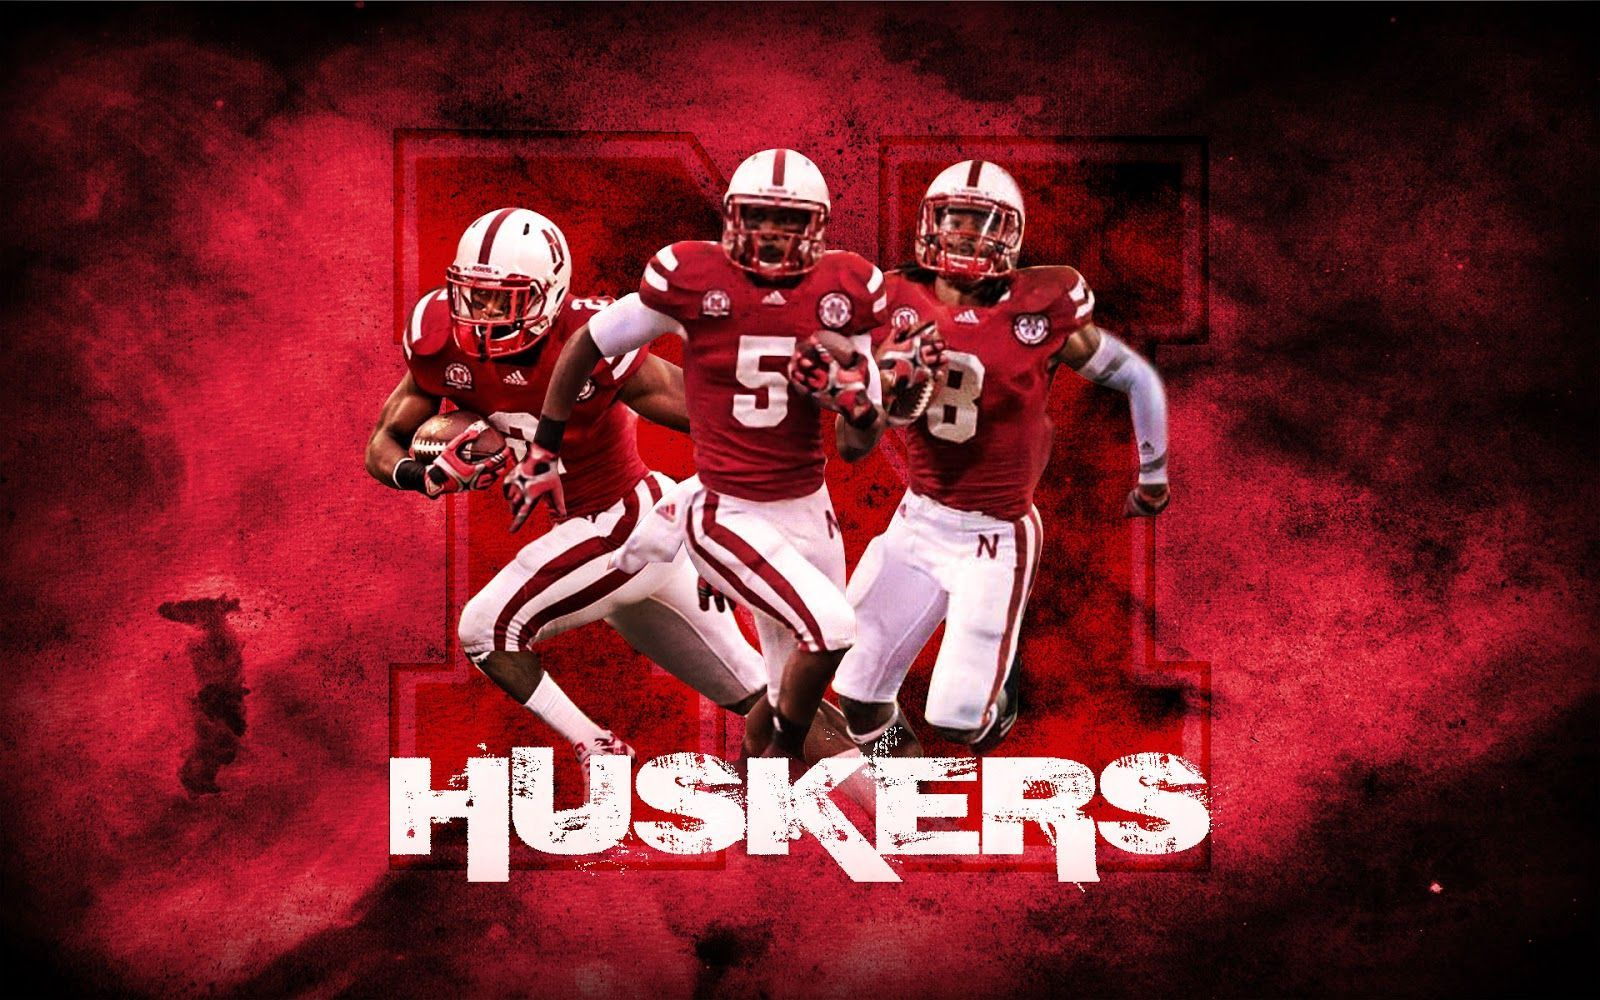 Nebraska Football Wallpapers Group 1500 1000 Nebraska Football Wallpapers 45 Wallpapers Adorable Wallpape Nebraska Football Football Wallpaper Cornhuskers